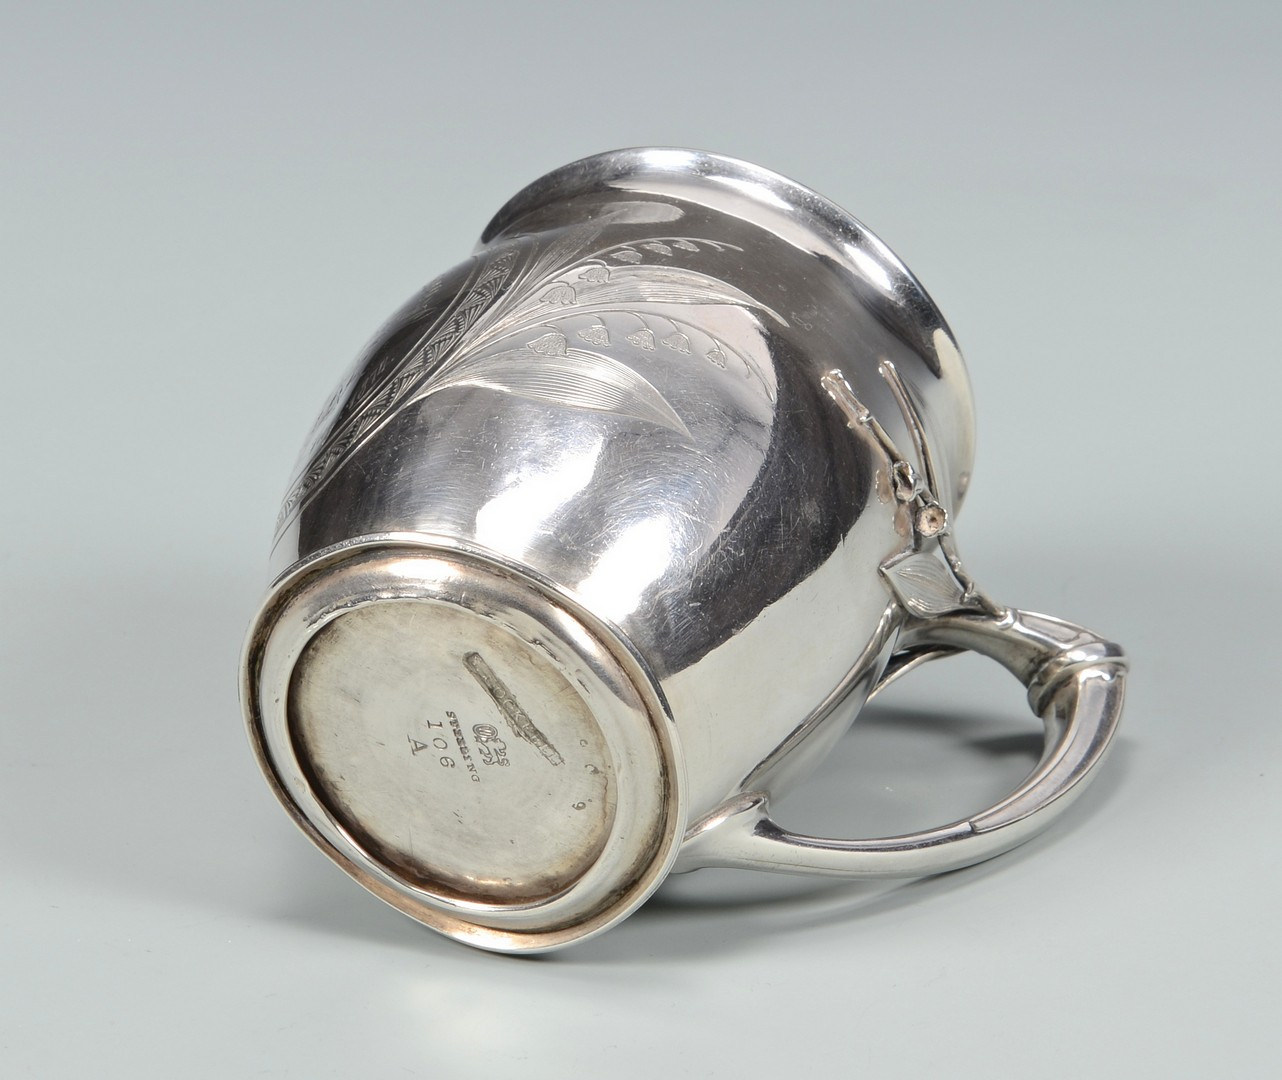 Lot 73: Aesthetic Silver Cup, S. Cockrell